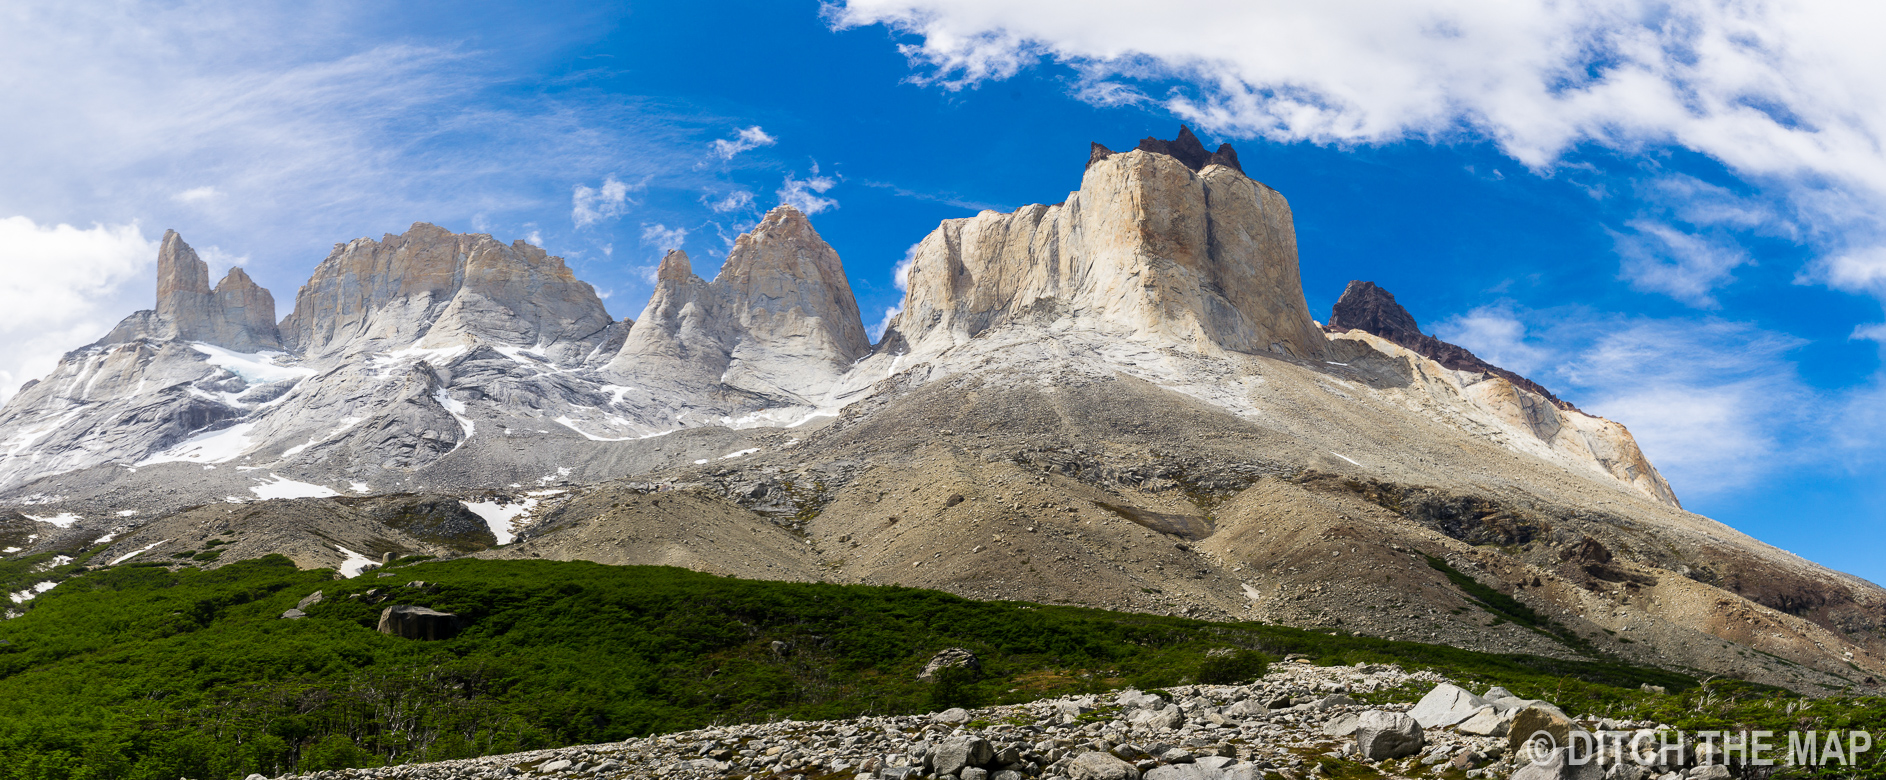 Panoramic view during our 3rd day hiking the W-Trek in Torres del Paine, Chile